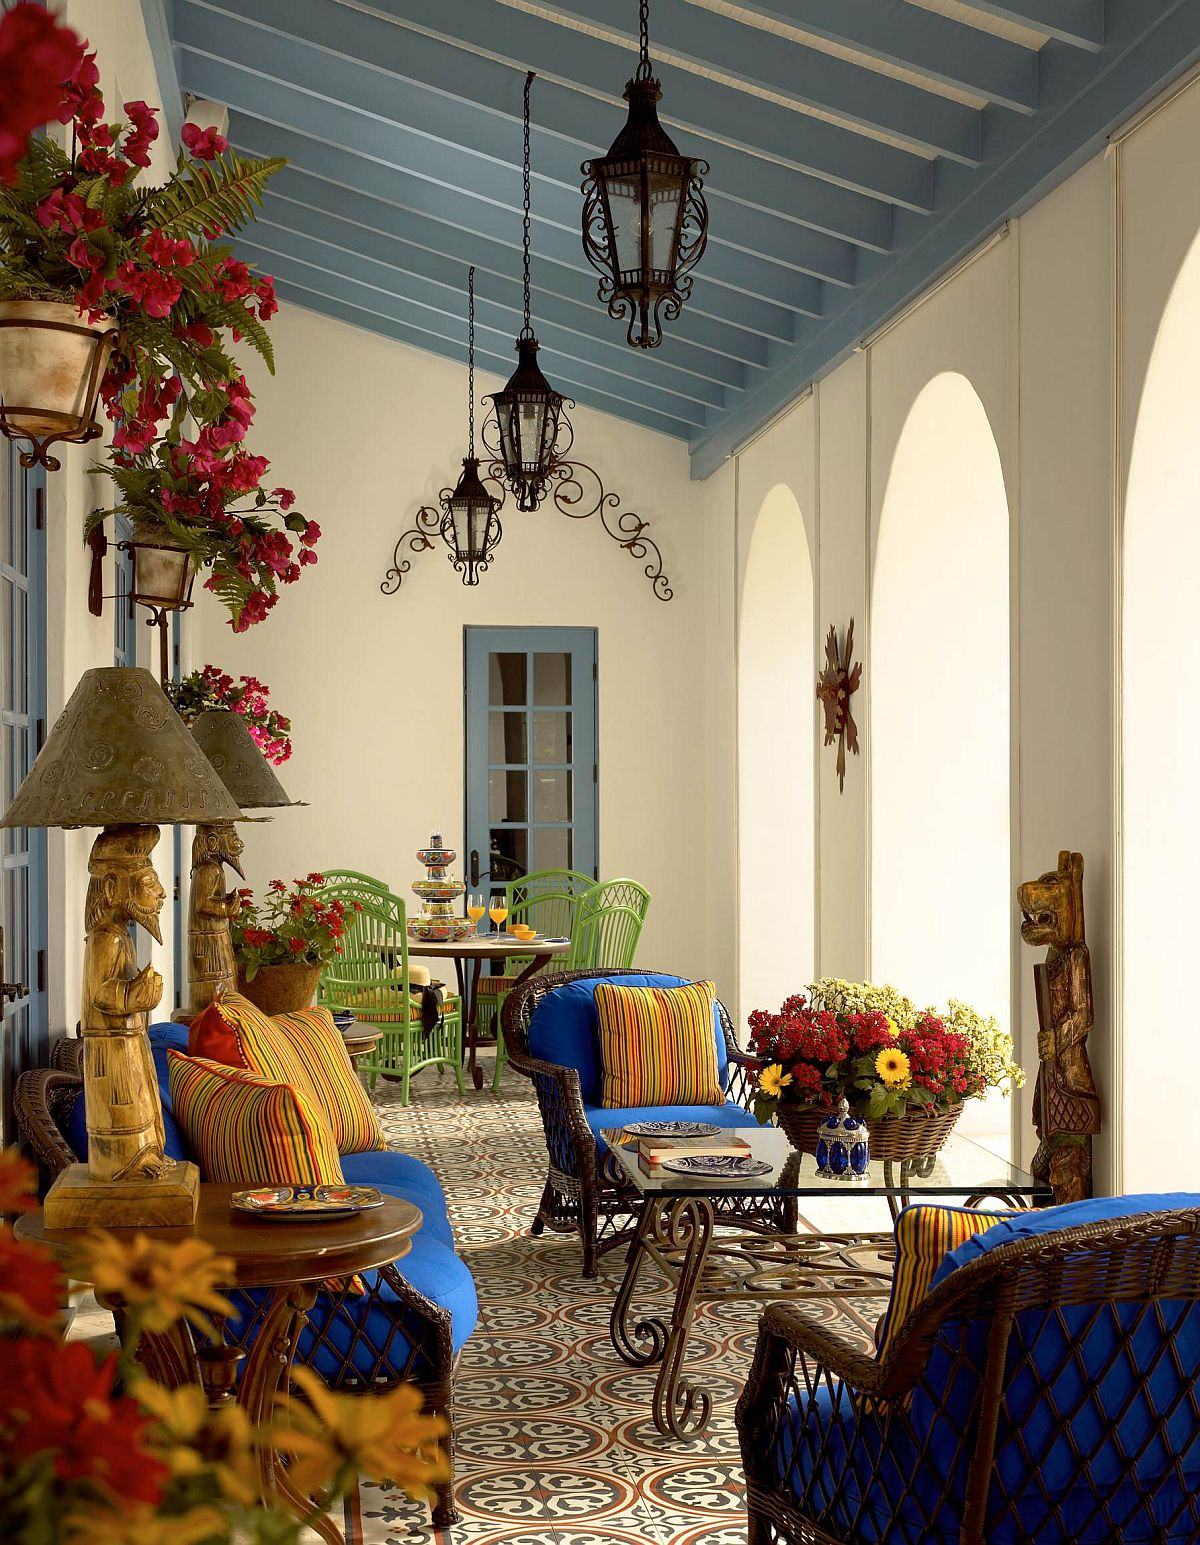 Brilliant blues and bold yellows are coupled with a relaxing ambiance inside this Mediterranean porch